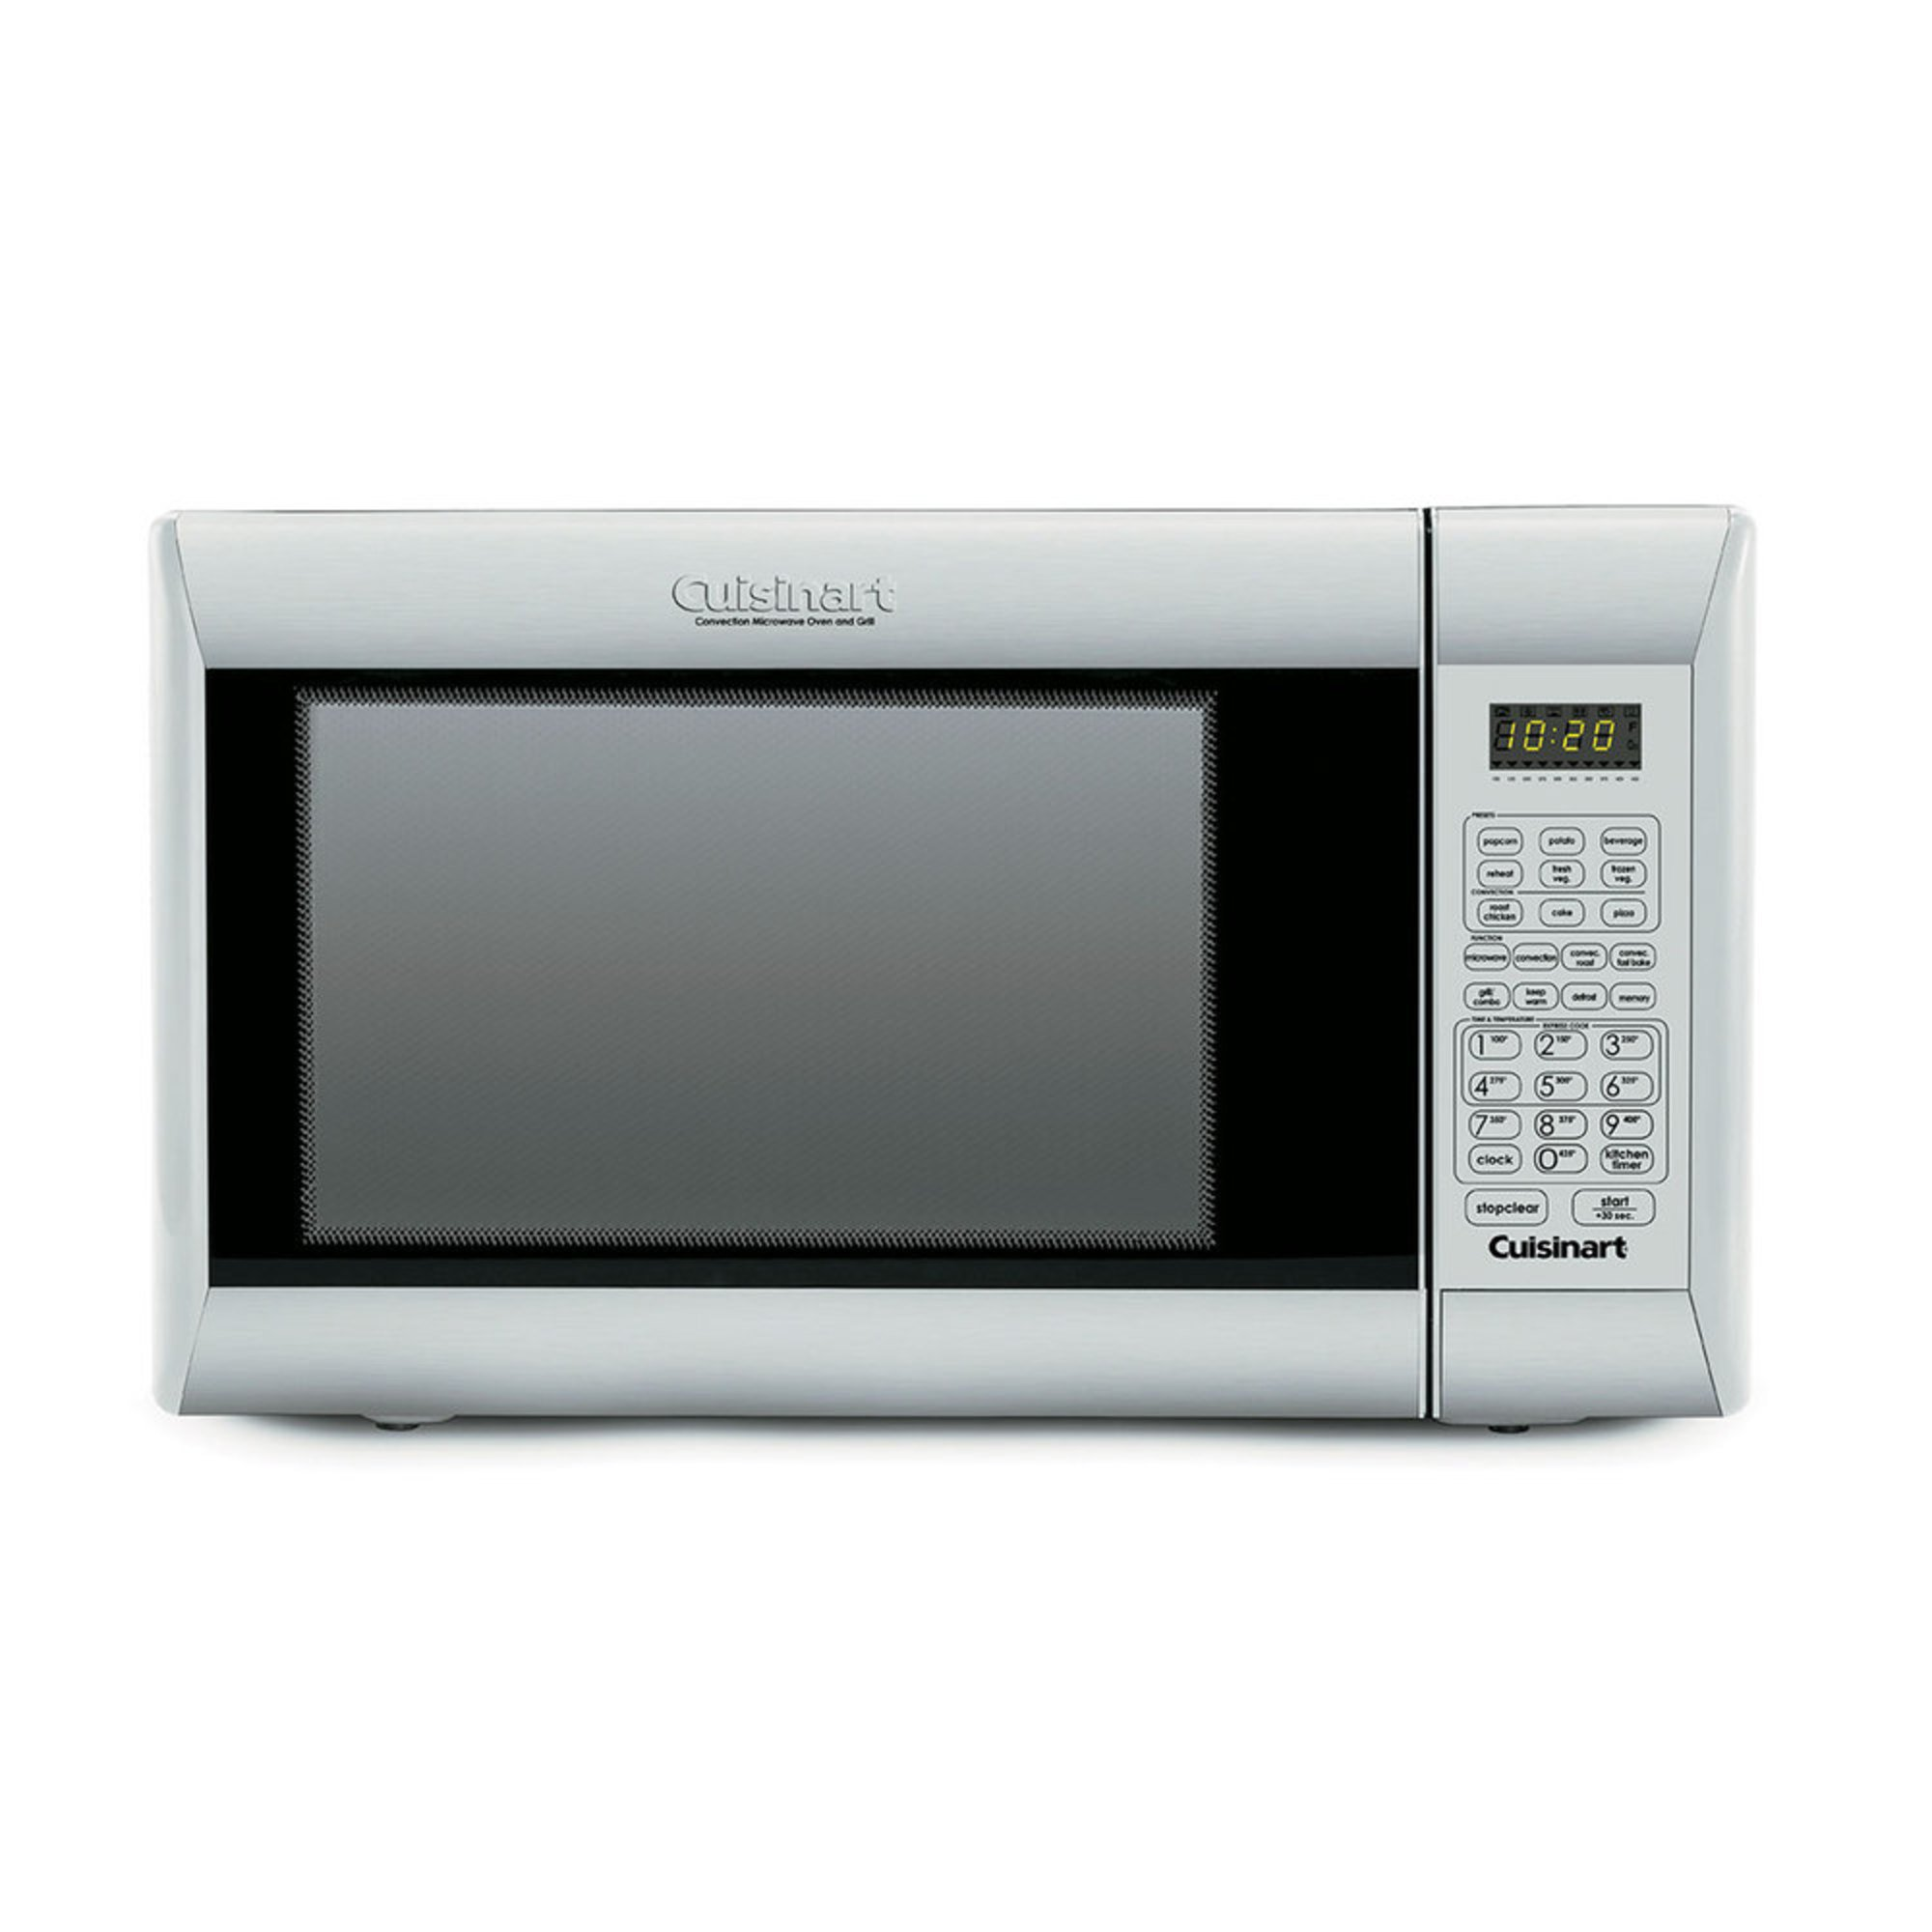 Cuisinart Convection Microwave Oven And Grill Countertop